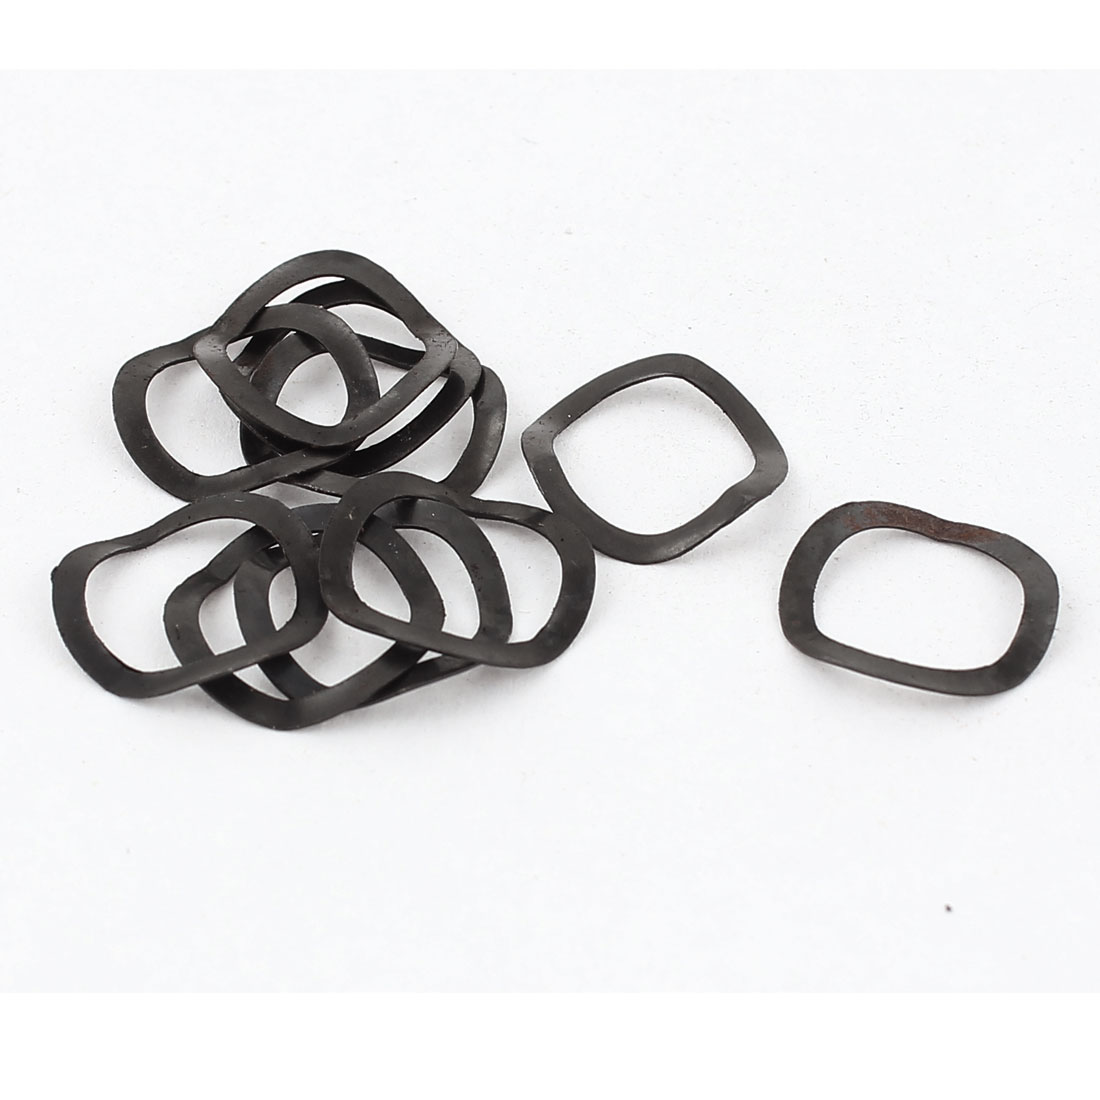 10 Pieces Black Metal Wave Crinkle Spring Washer 10mm x 13.5mm x 0.3mm